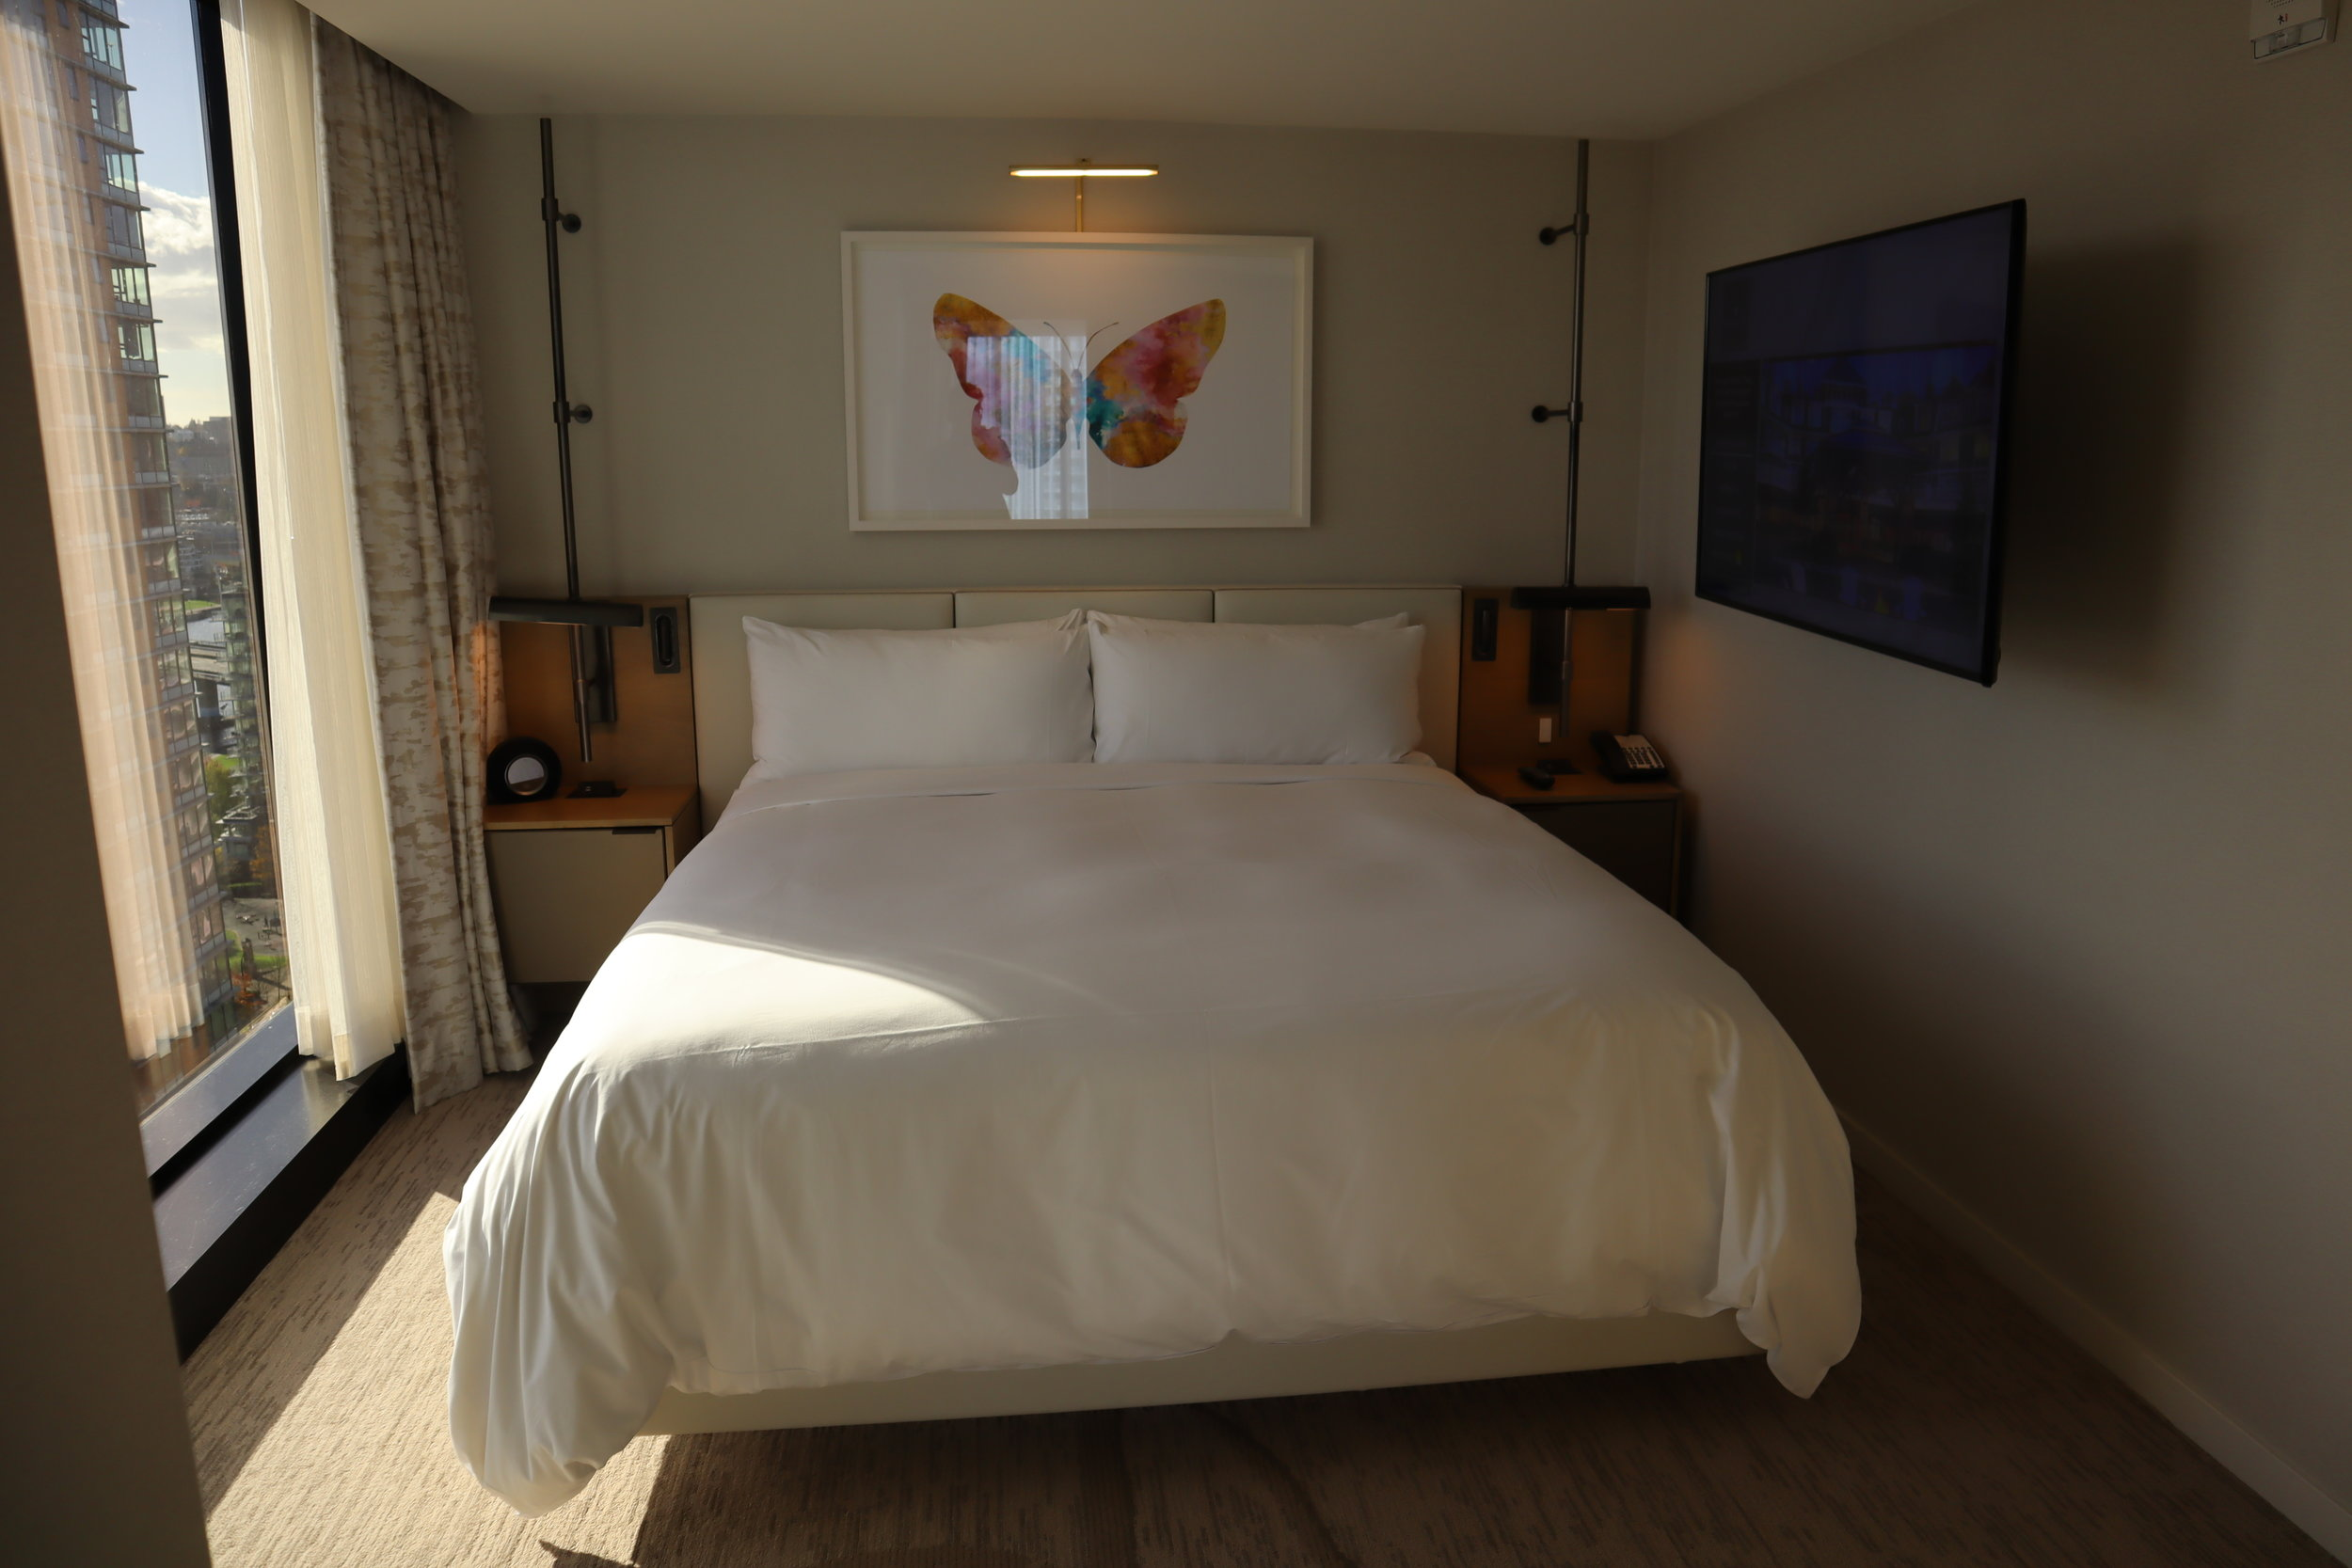 JW Marriott Parq Vancouver – One-bedroom suite bedroom